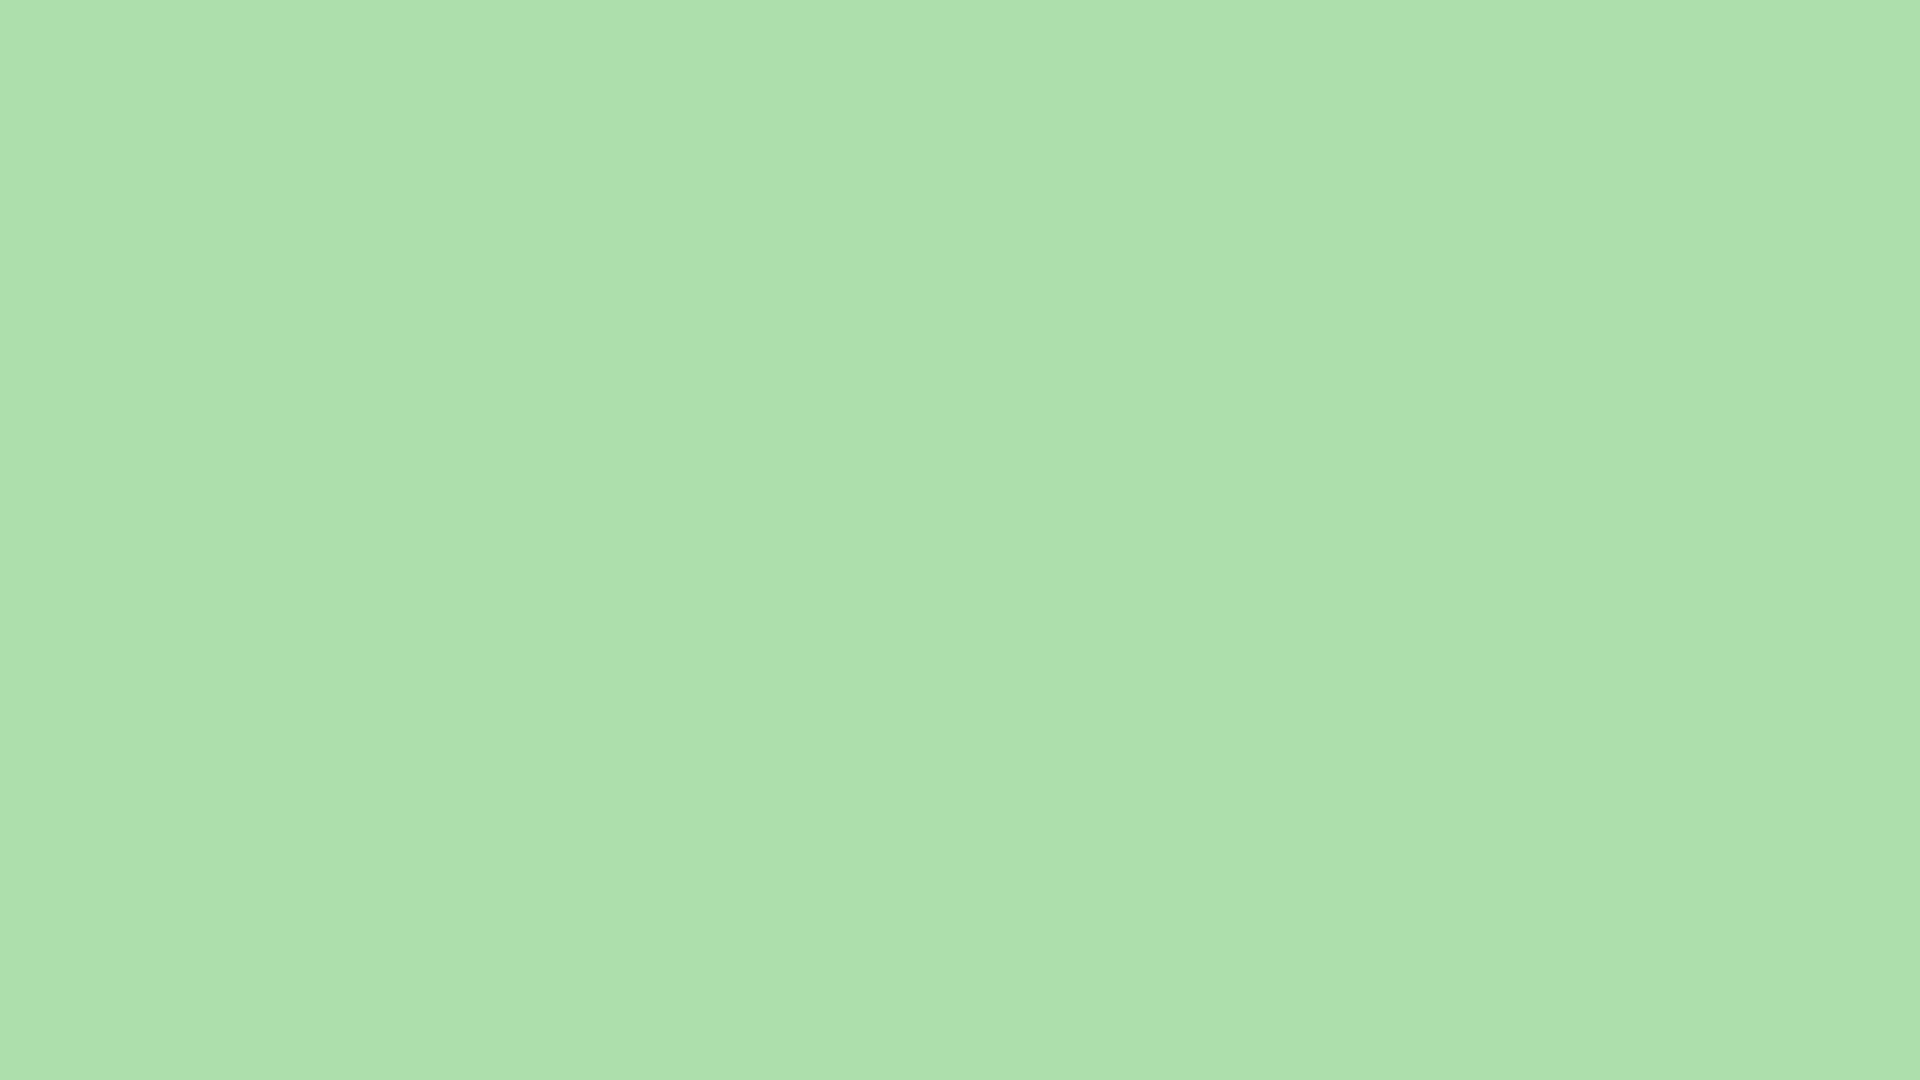 1920x1080 Light Moss Green Solid Color Background